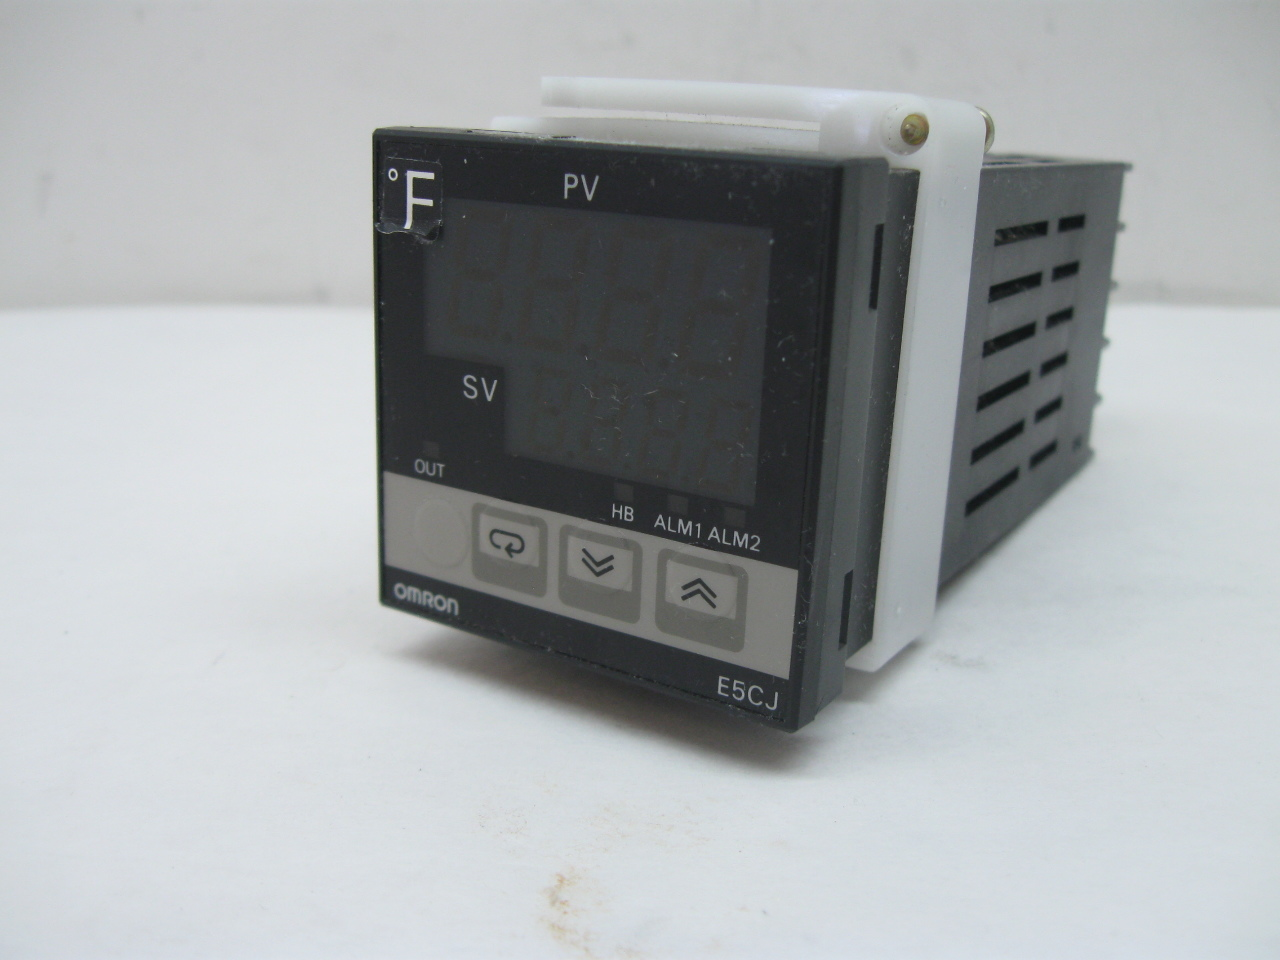 Details about Omron E5CJ R2HB Digital Temperature Controller #5E676D